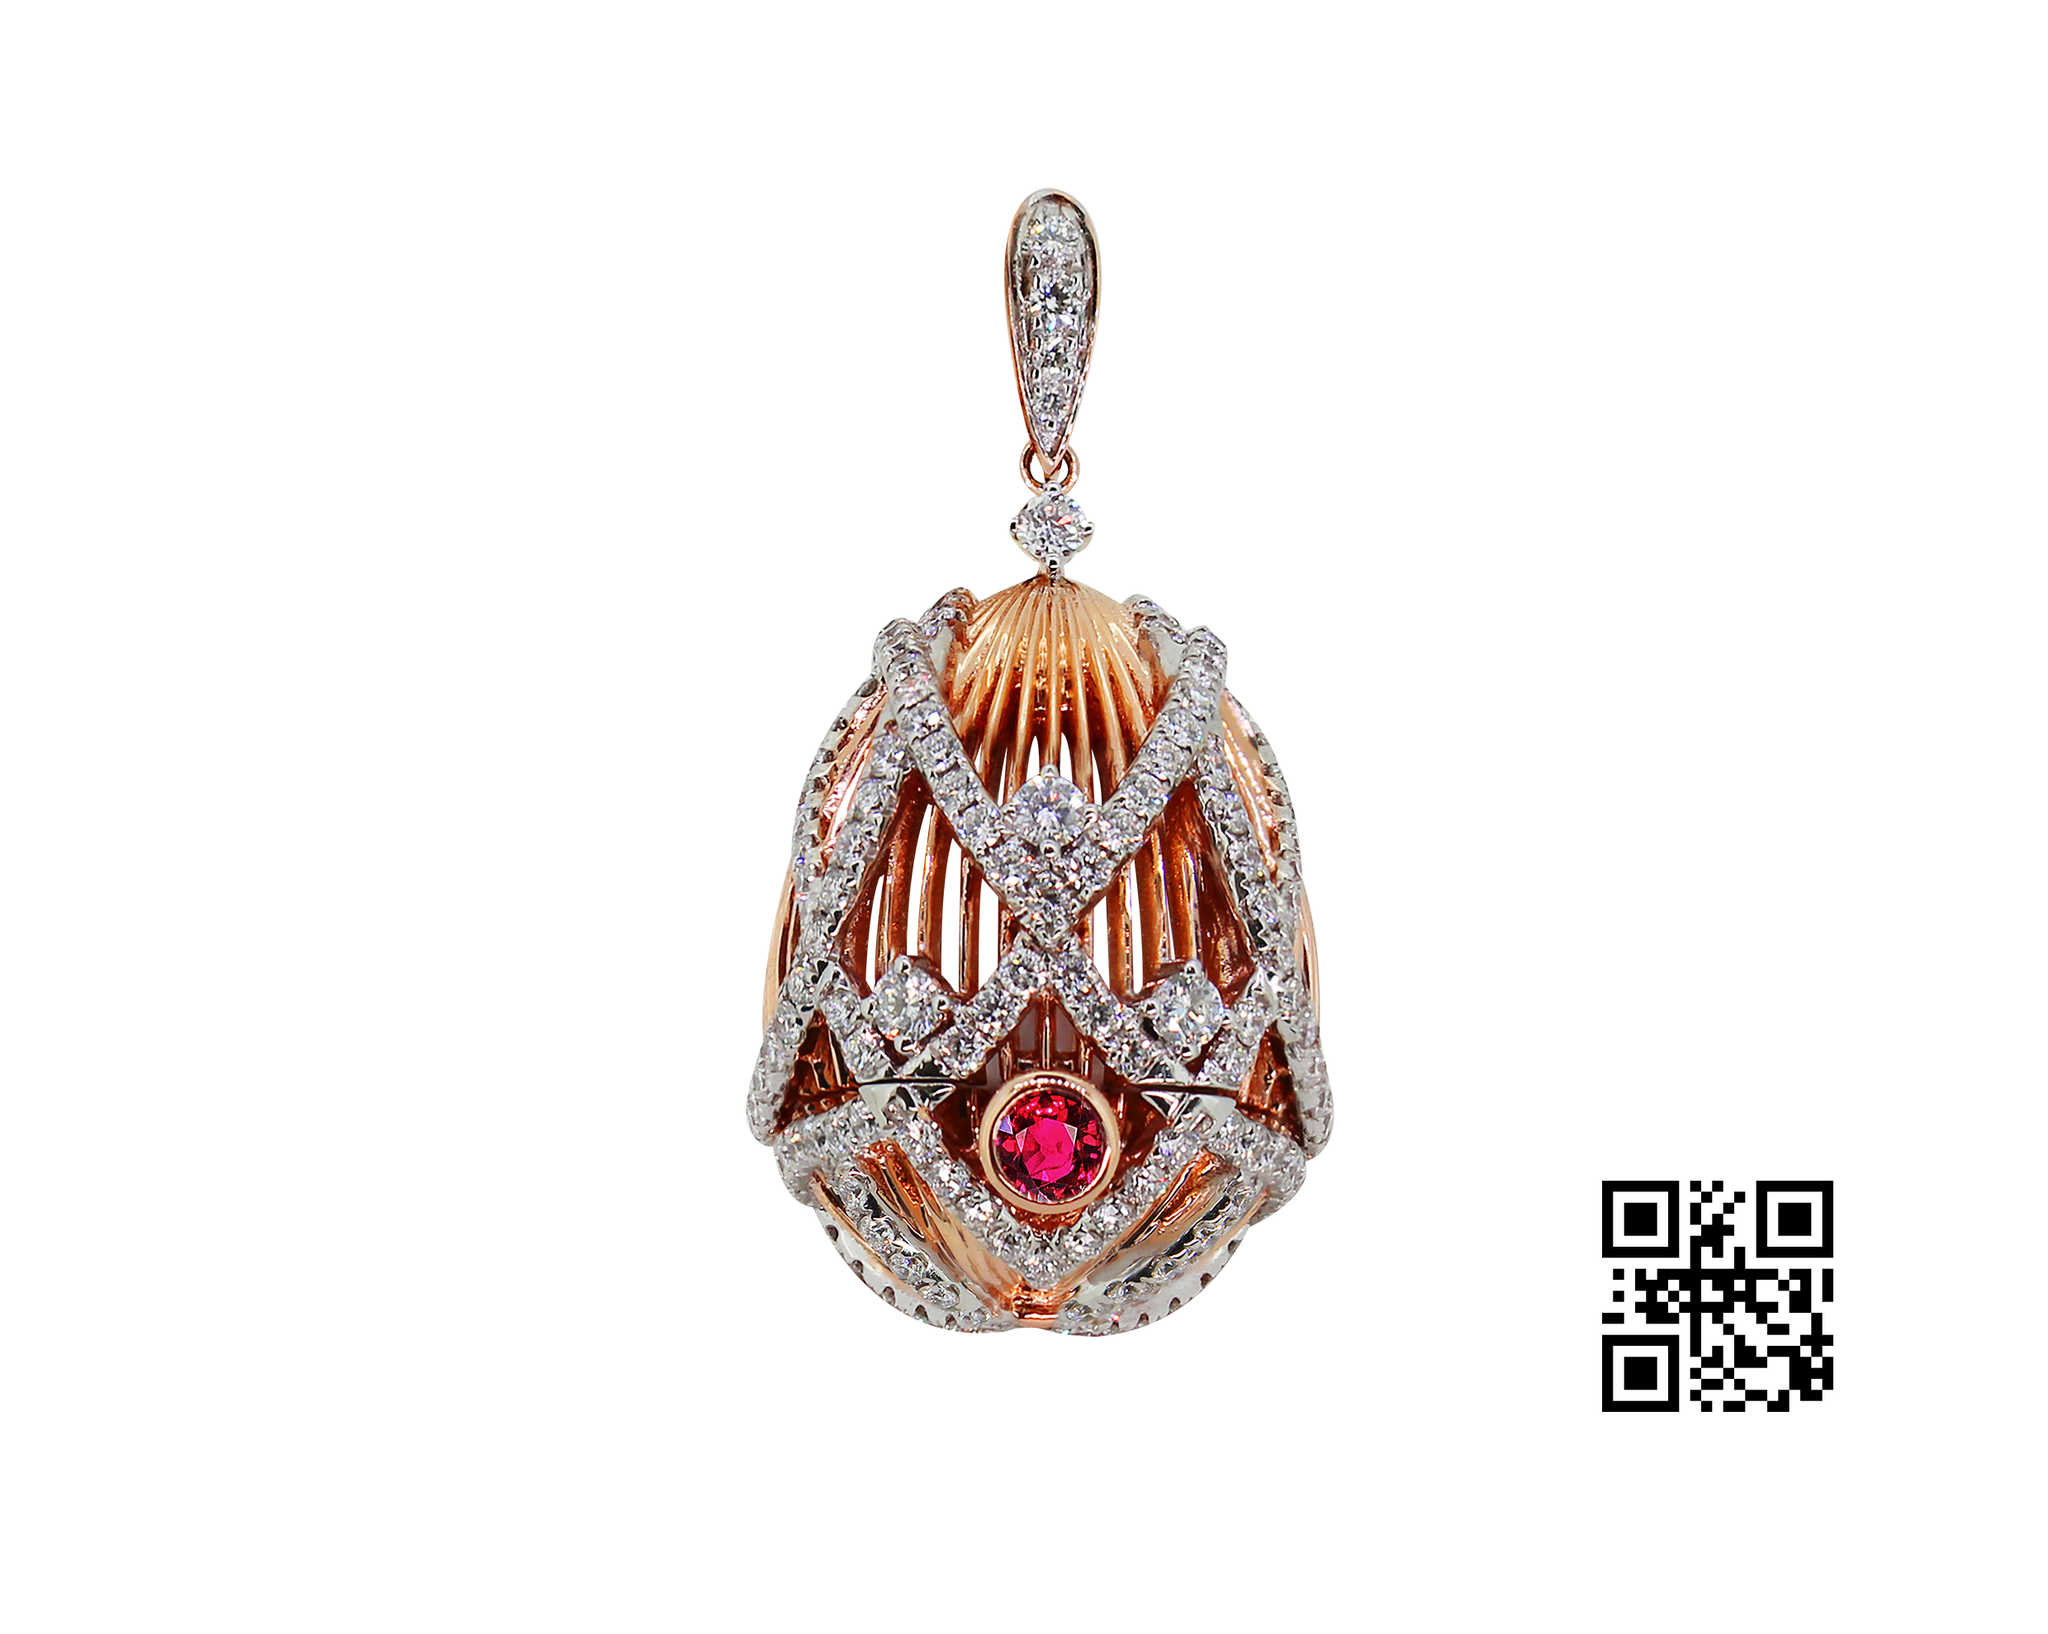 From Russia With Love : Faberge Delight